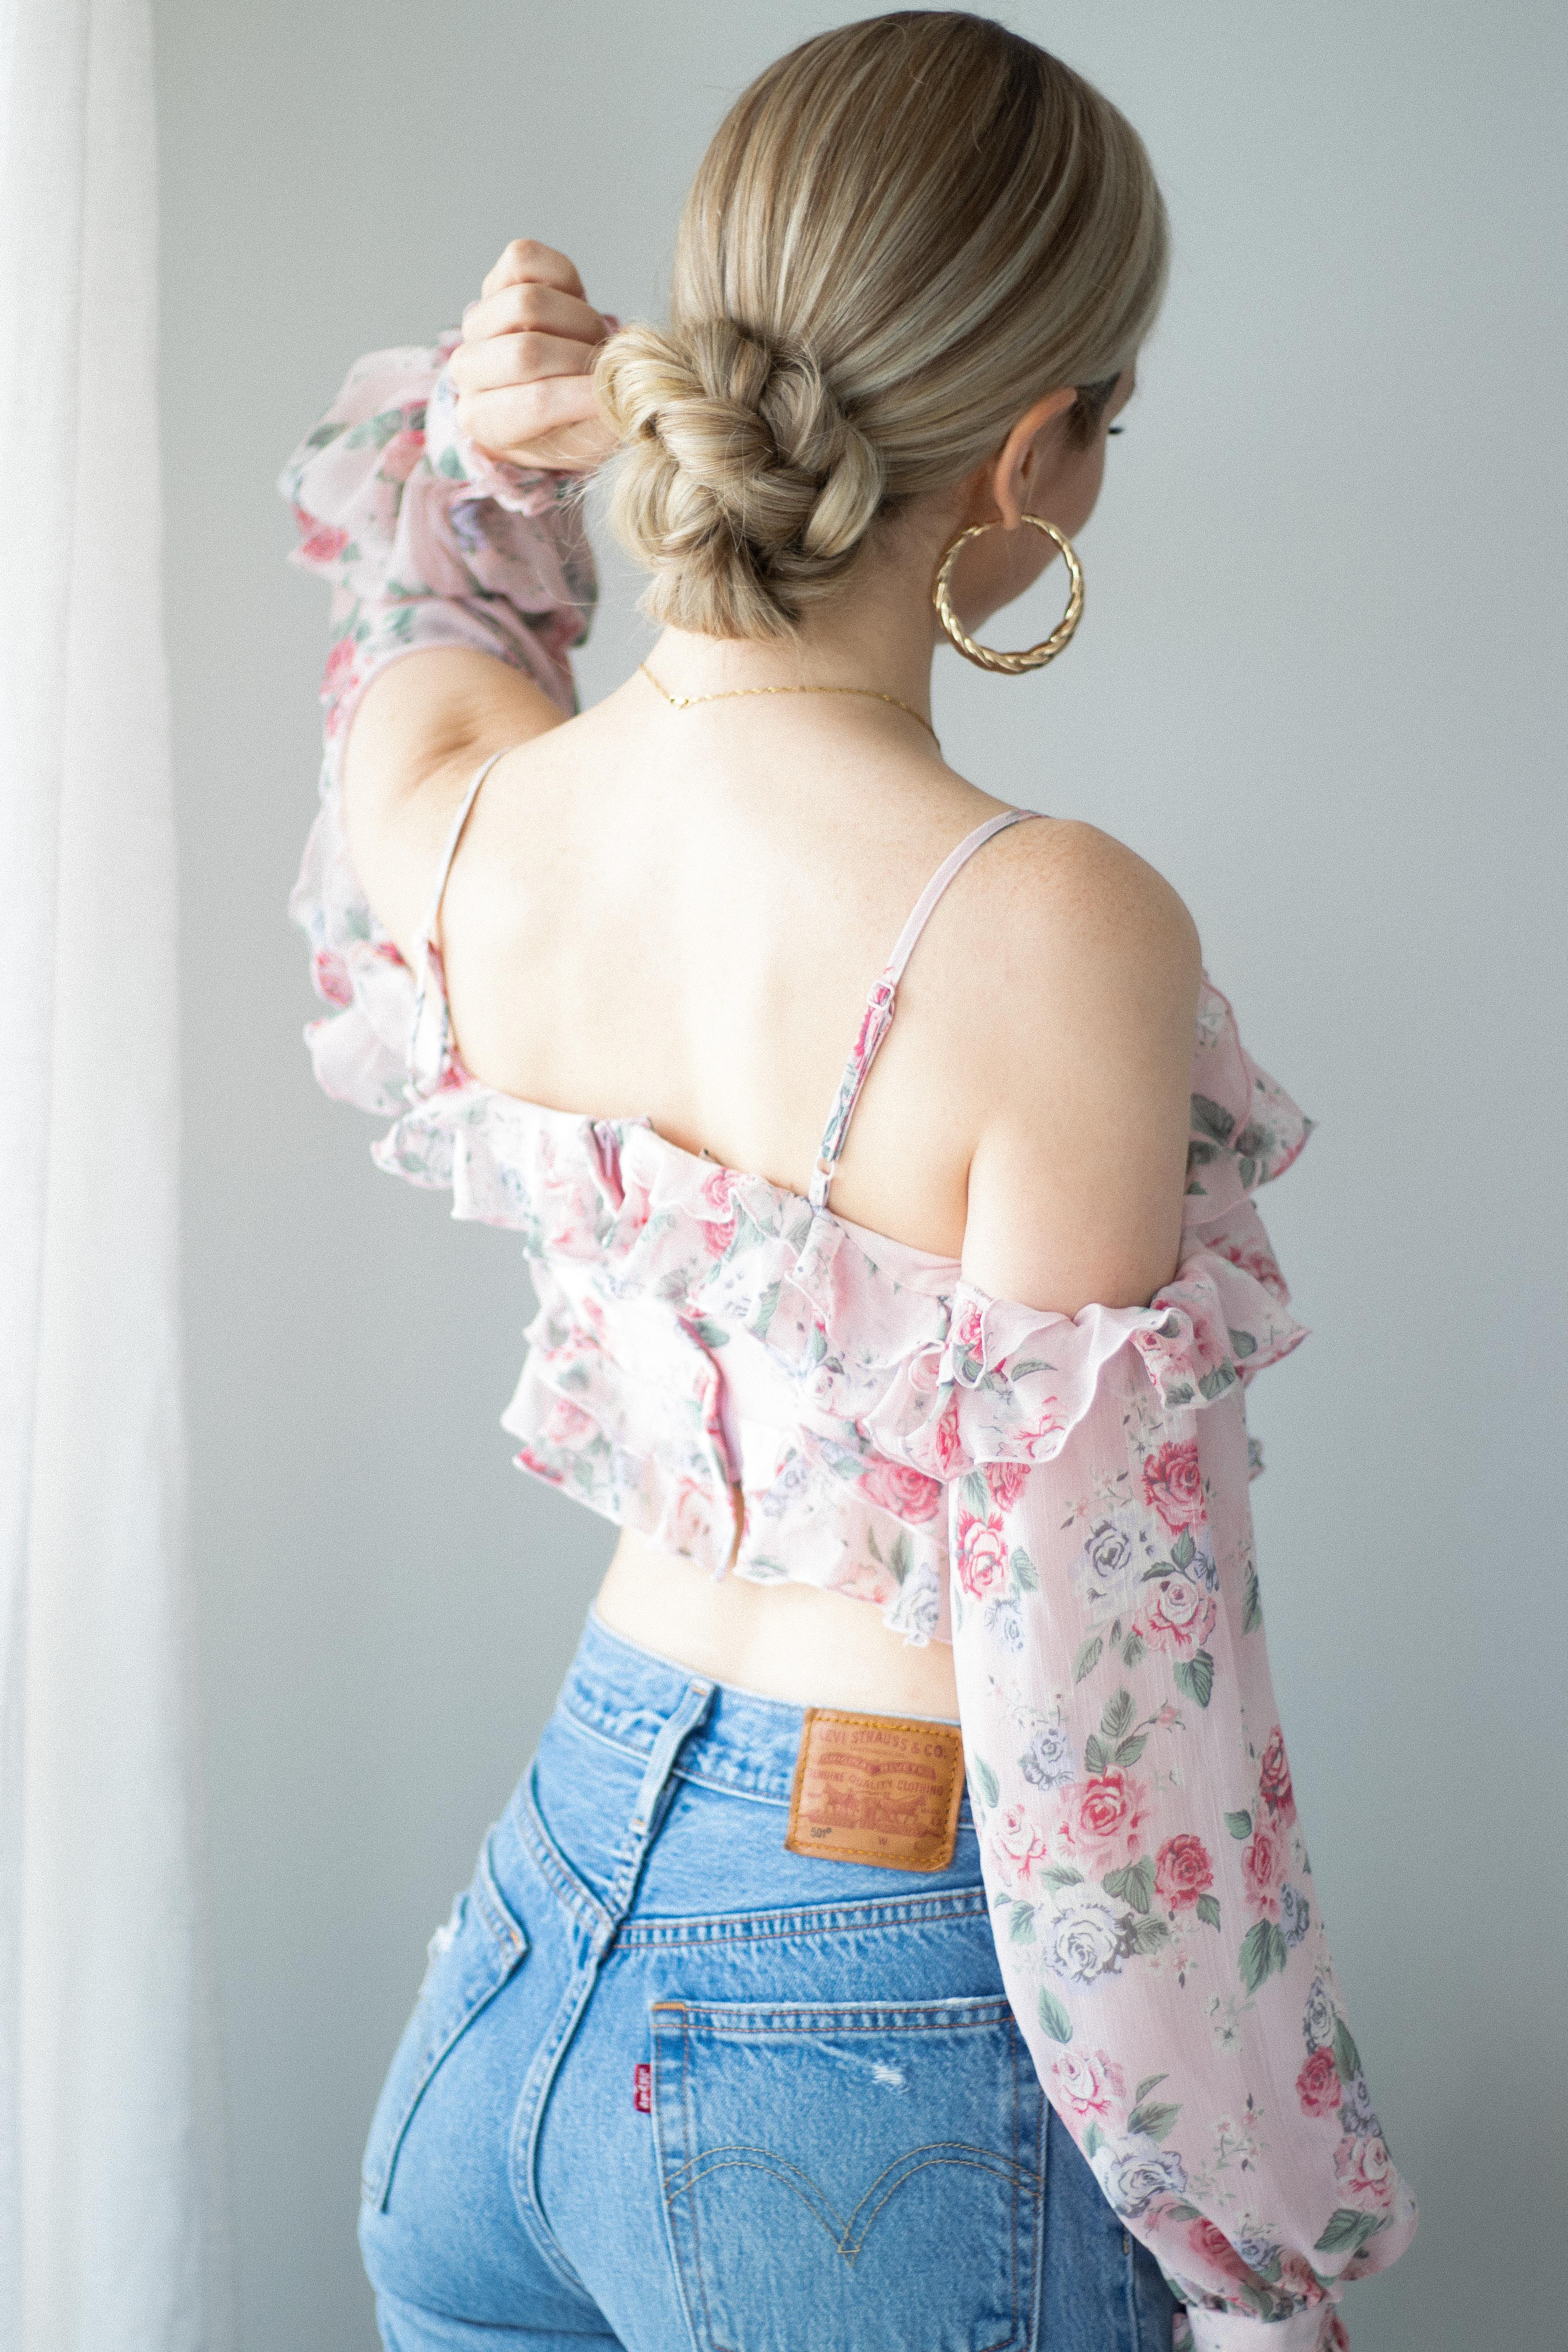 BRAIDED UPDO HAIRSTYLE PERFECT FOR WORK (with tutorial) | www.alexgaboury.com